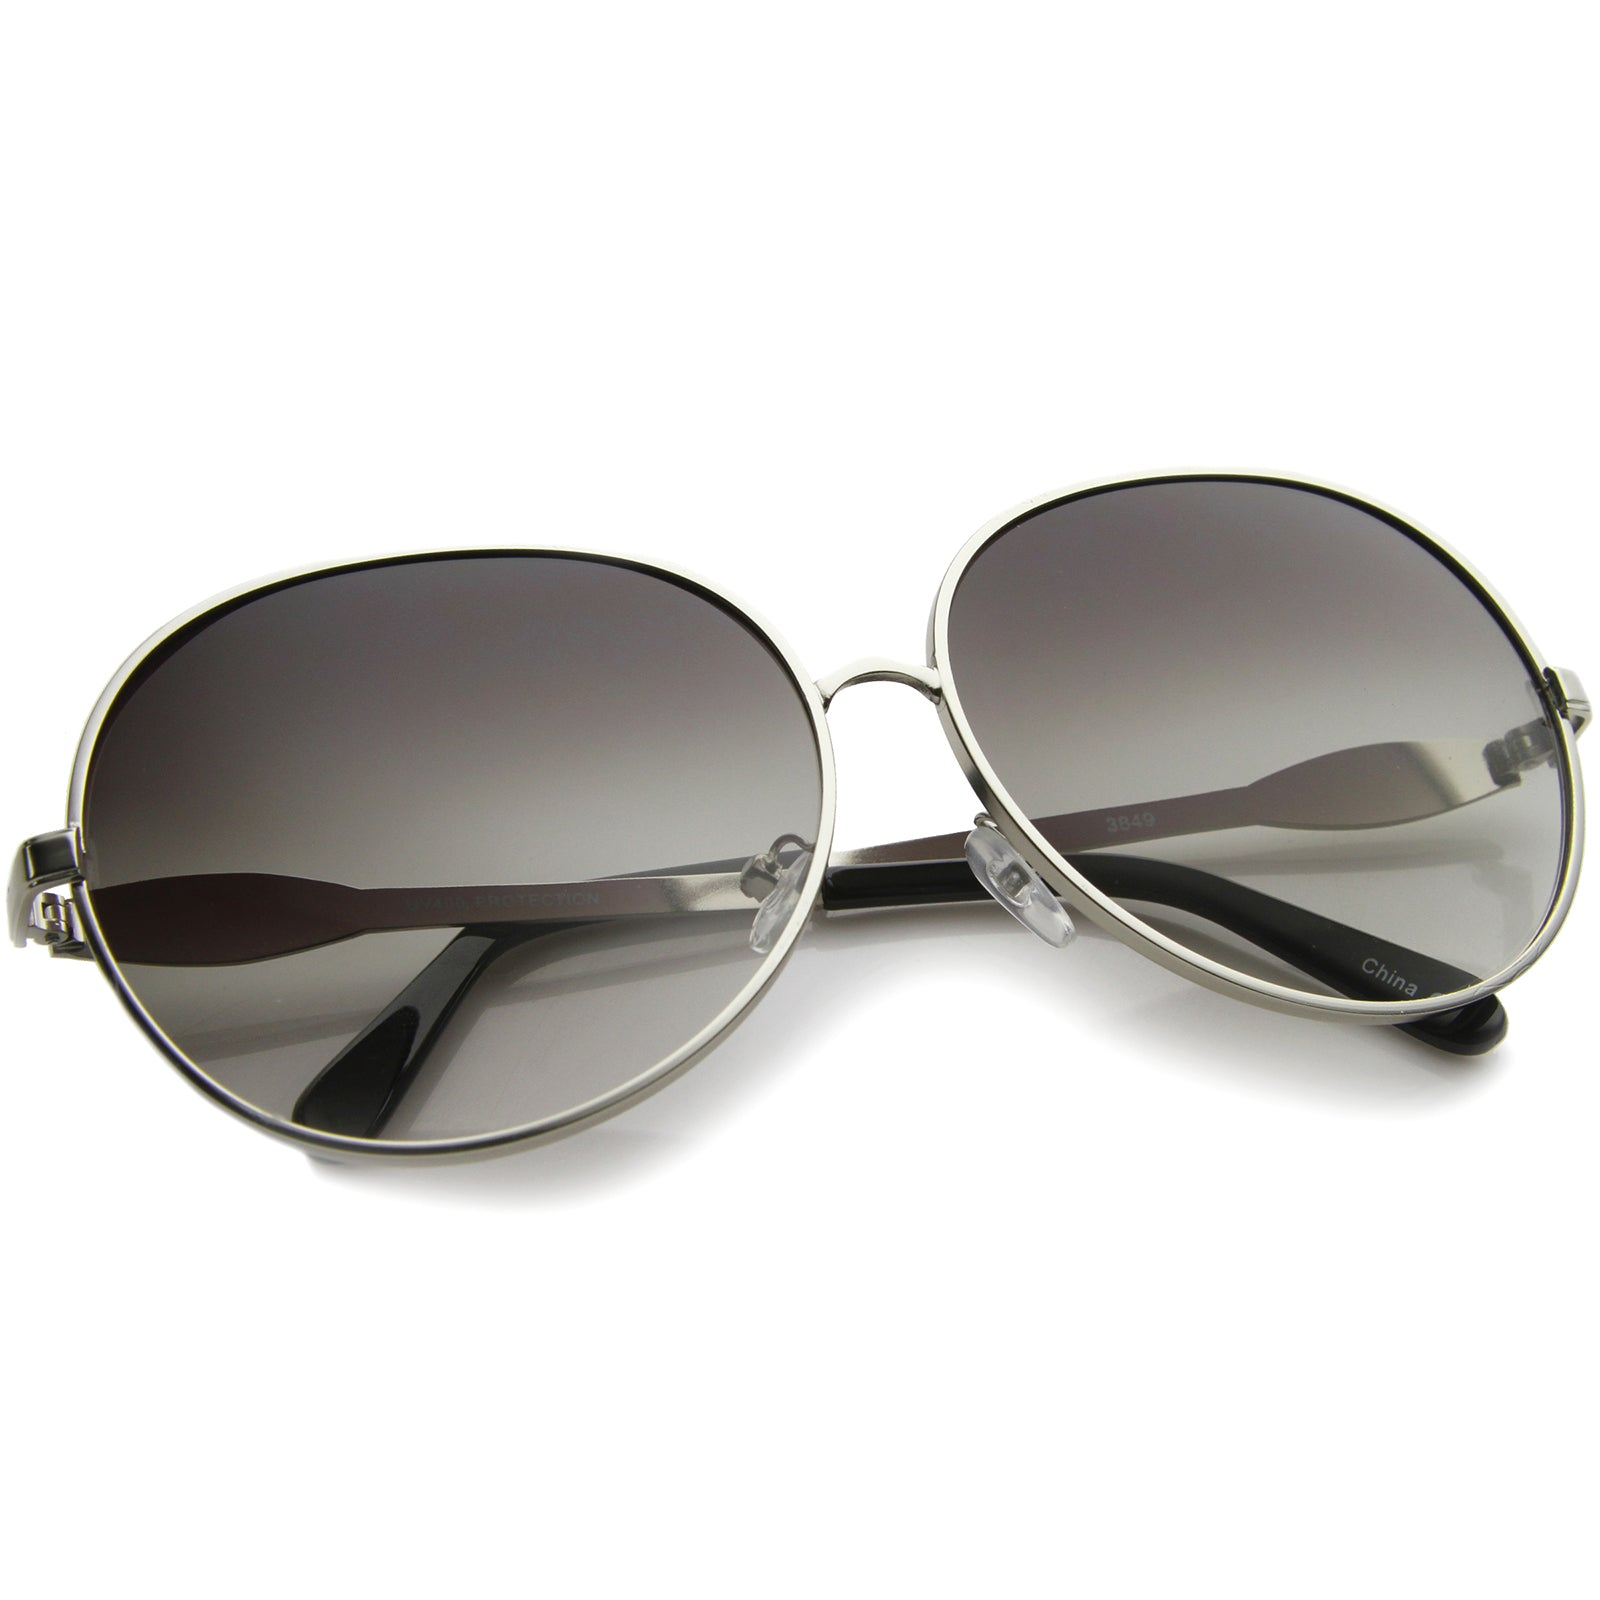 Womens Glam Full Metal Frame Oversized Round Sunglasses 63mm - sunglass.la - 8